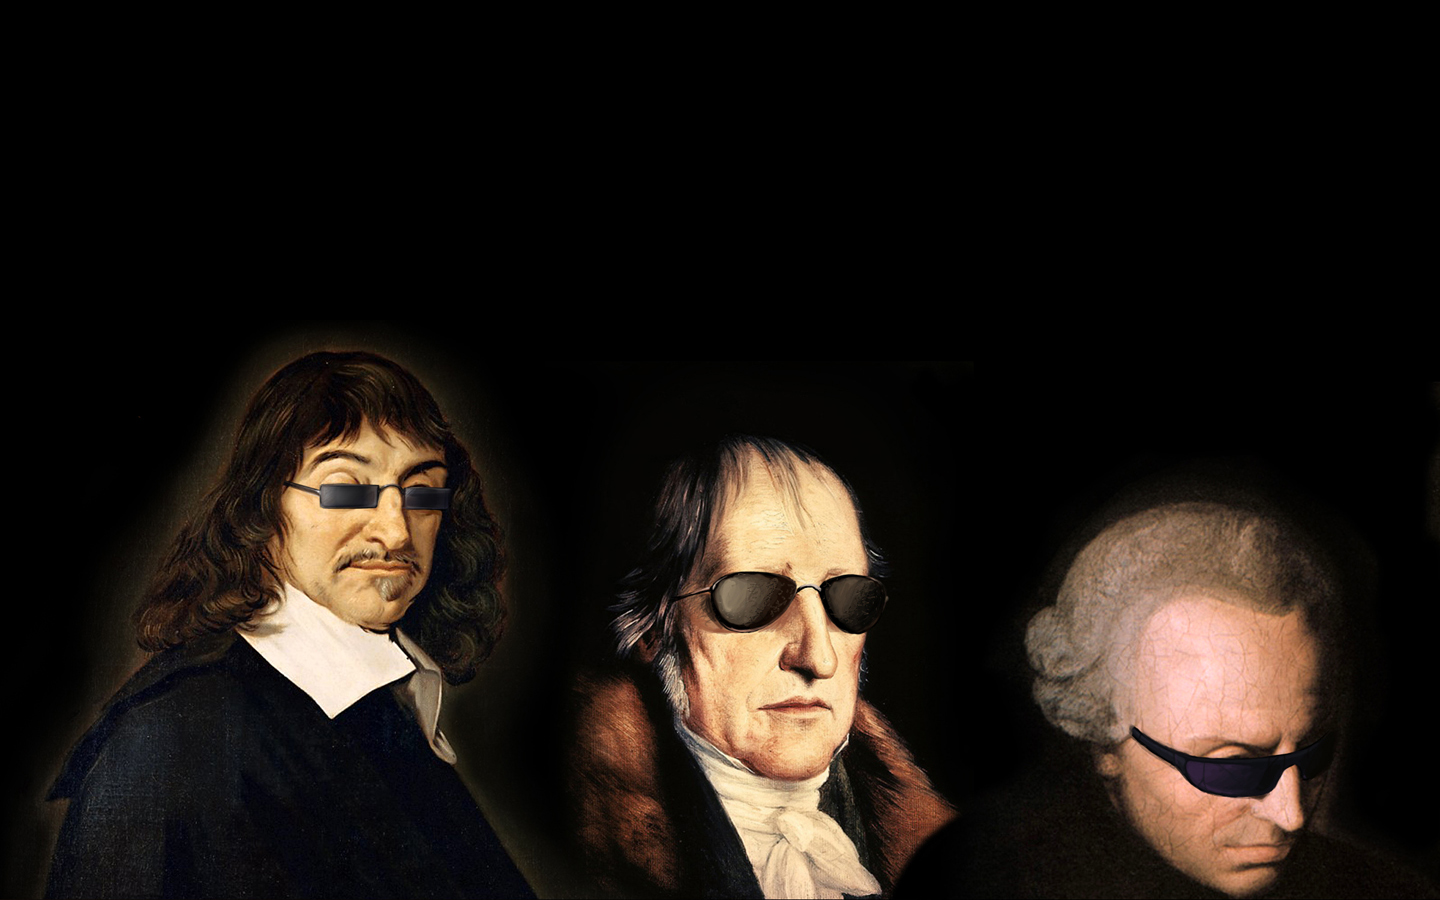 Cool Philosophers Descartes Kant And Hegel With Sunglasses 1440x900